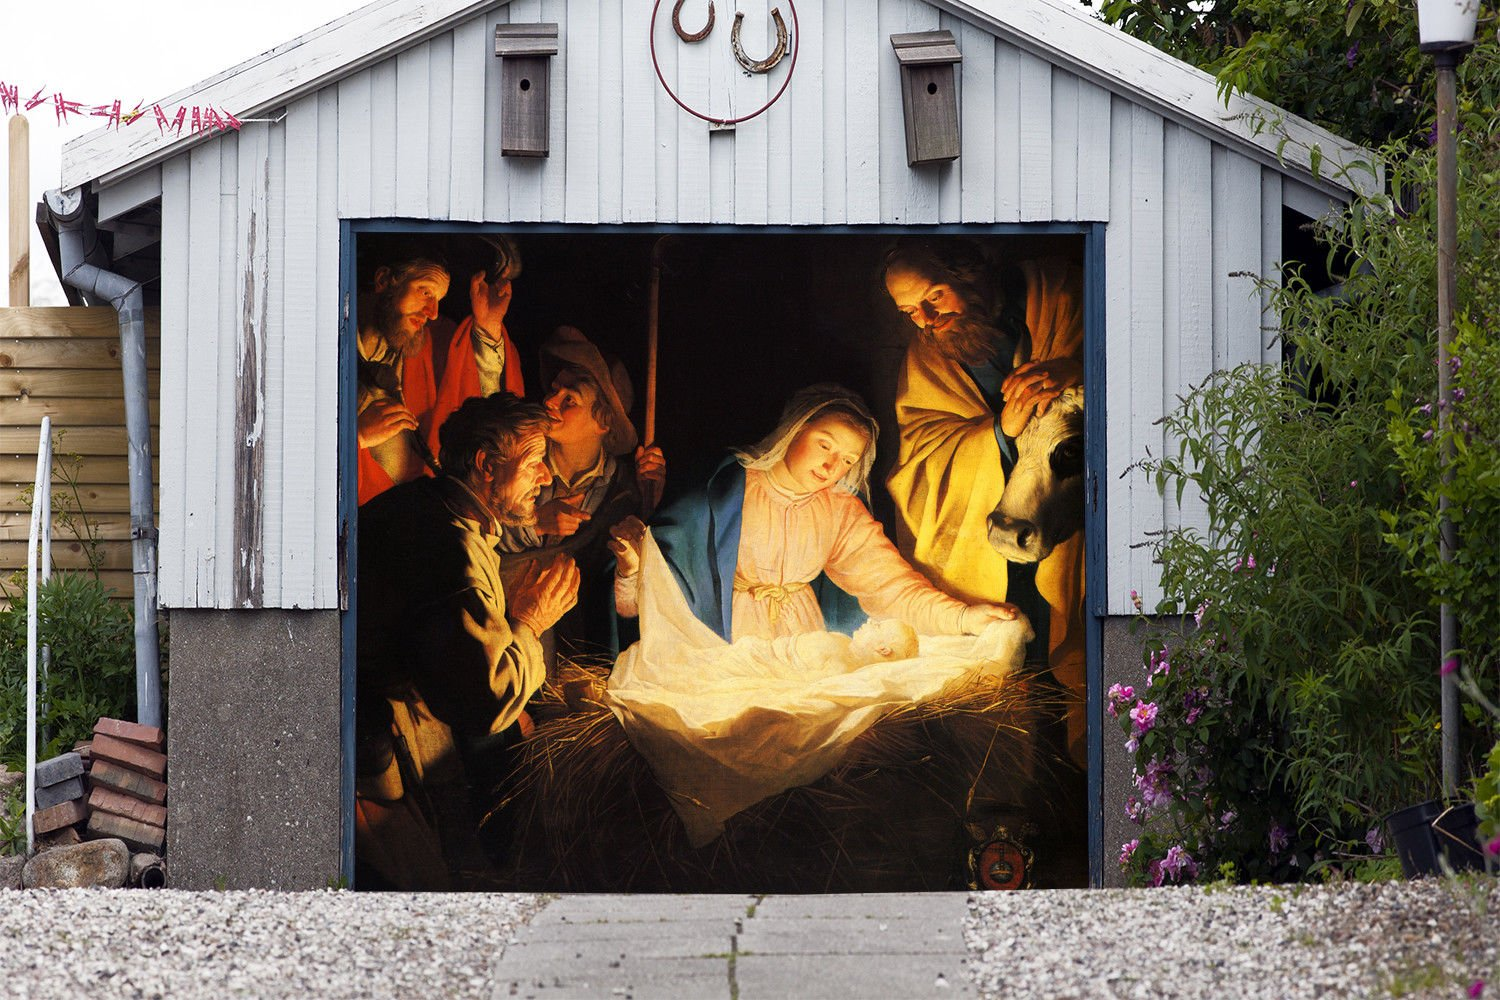 Outdoor Christmas Jesus Murals Nativity Scene Garage Door Banner Single Garage Door Covers Billboard House Garage Holy Night Decor Full Color Decor 3D Effect Print Banner Size 83 x 89 inches DAV201